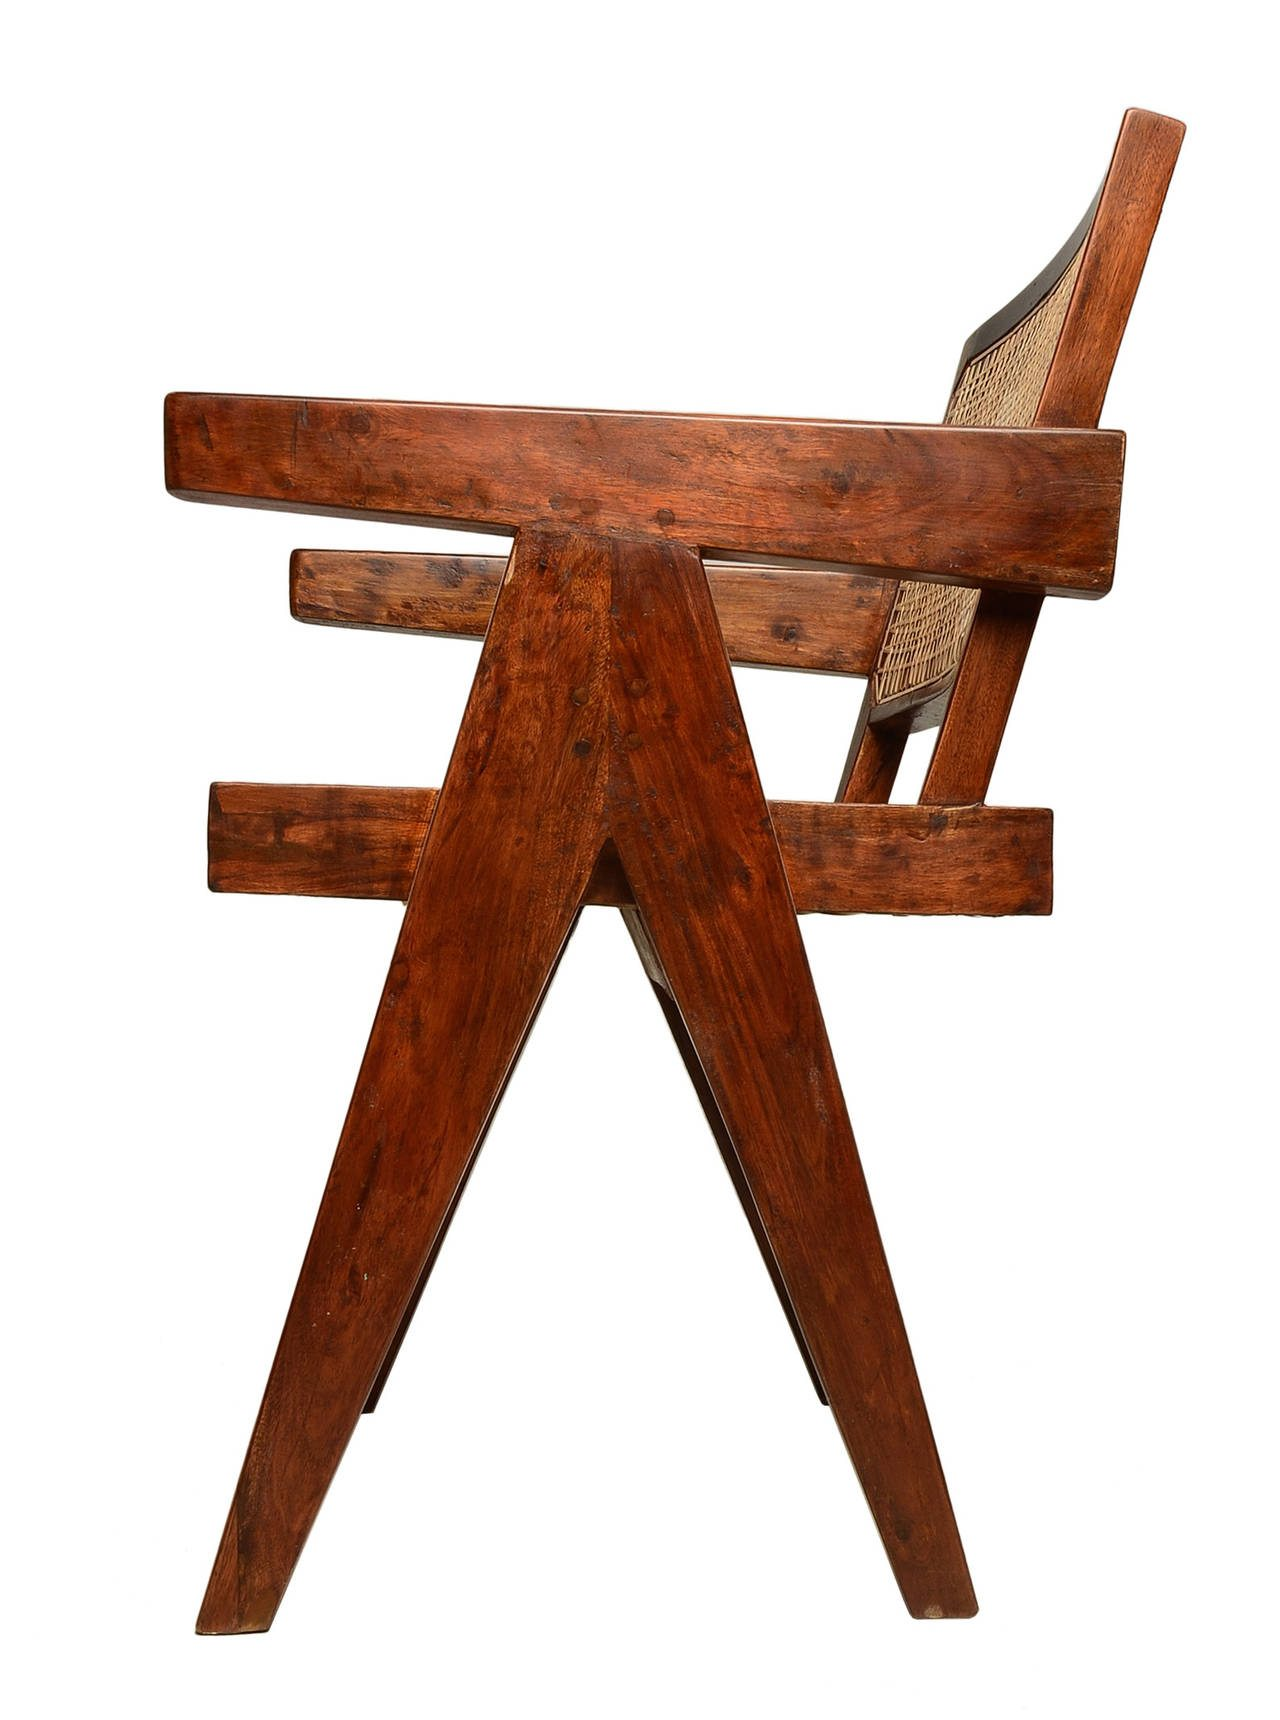 Armchair by Pierre Jeanneret donated by Porch Modern